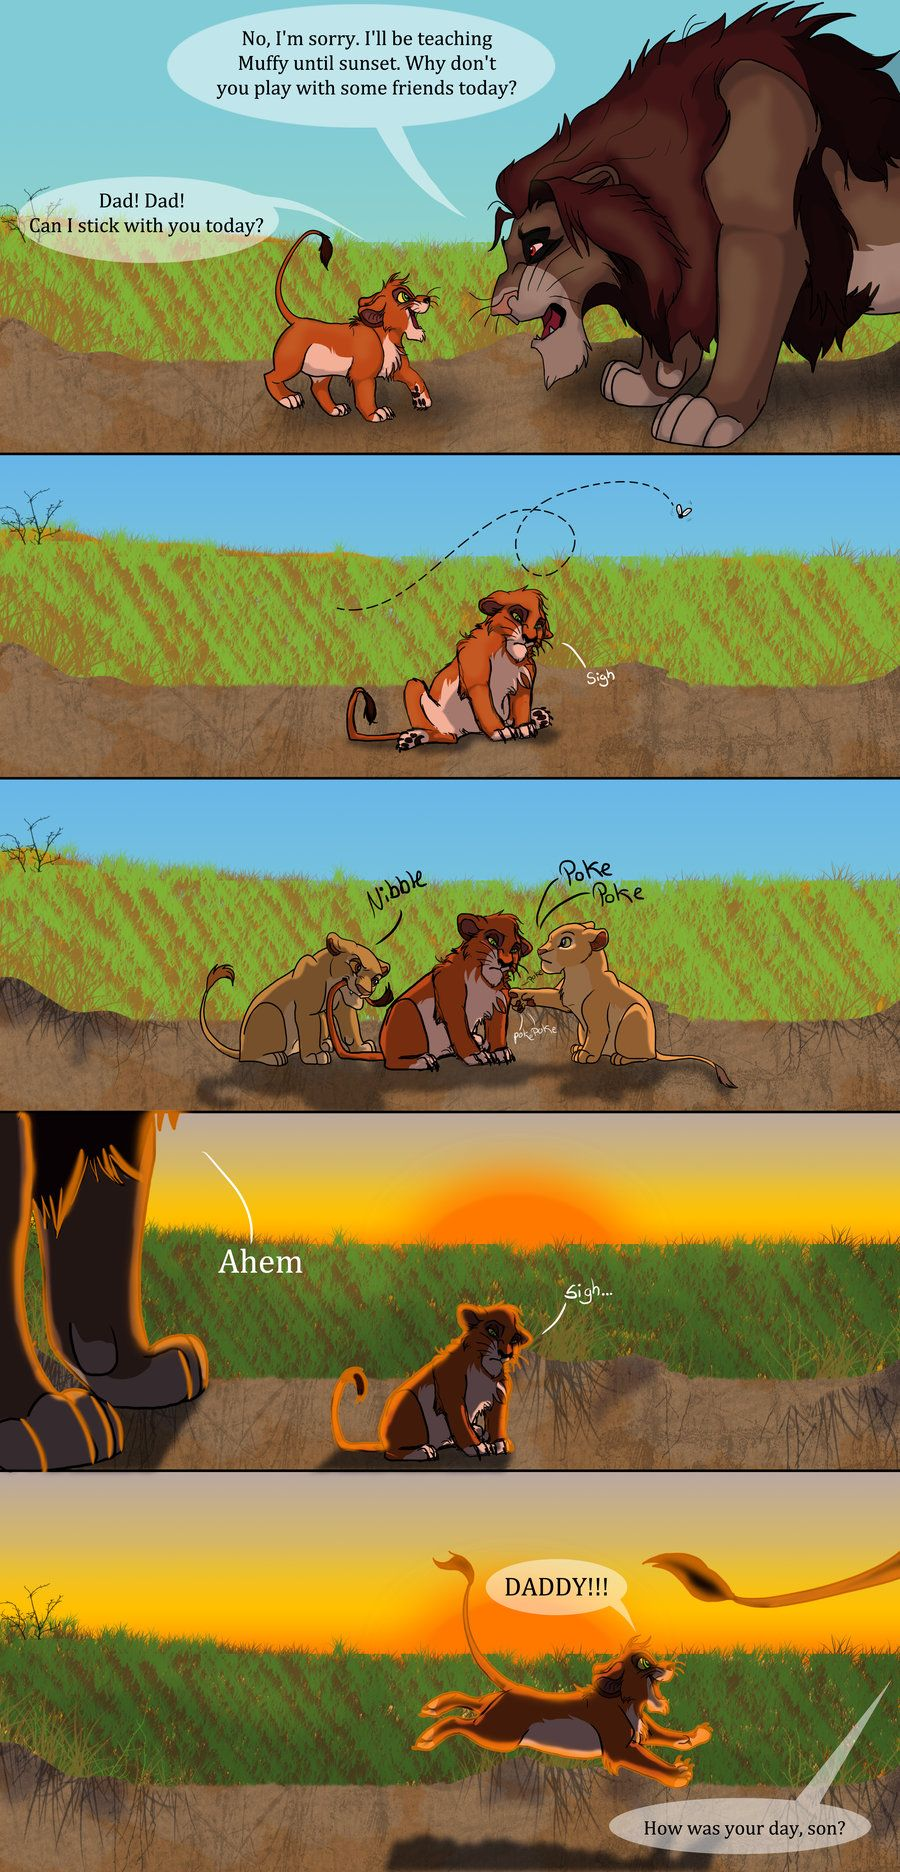 Ahadi and Scar, it's kinda sad because Ahadi is king of all light touches so he spends time with Mufasa all day when it light. And will only be with Scar when it is after sunset